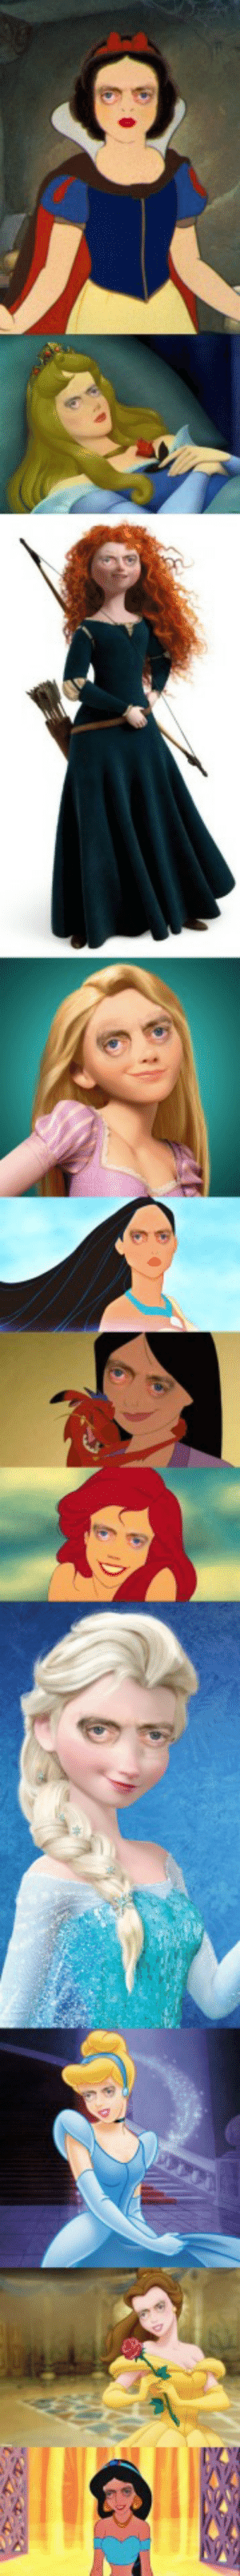 Disney, Funny, and Steve Buscemi: Disney Princesses but with Steve Buscemis eyes via /r/funny https://ift.tt/2KKH8R7